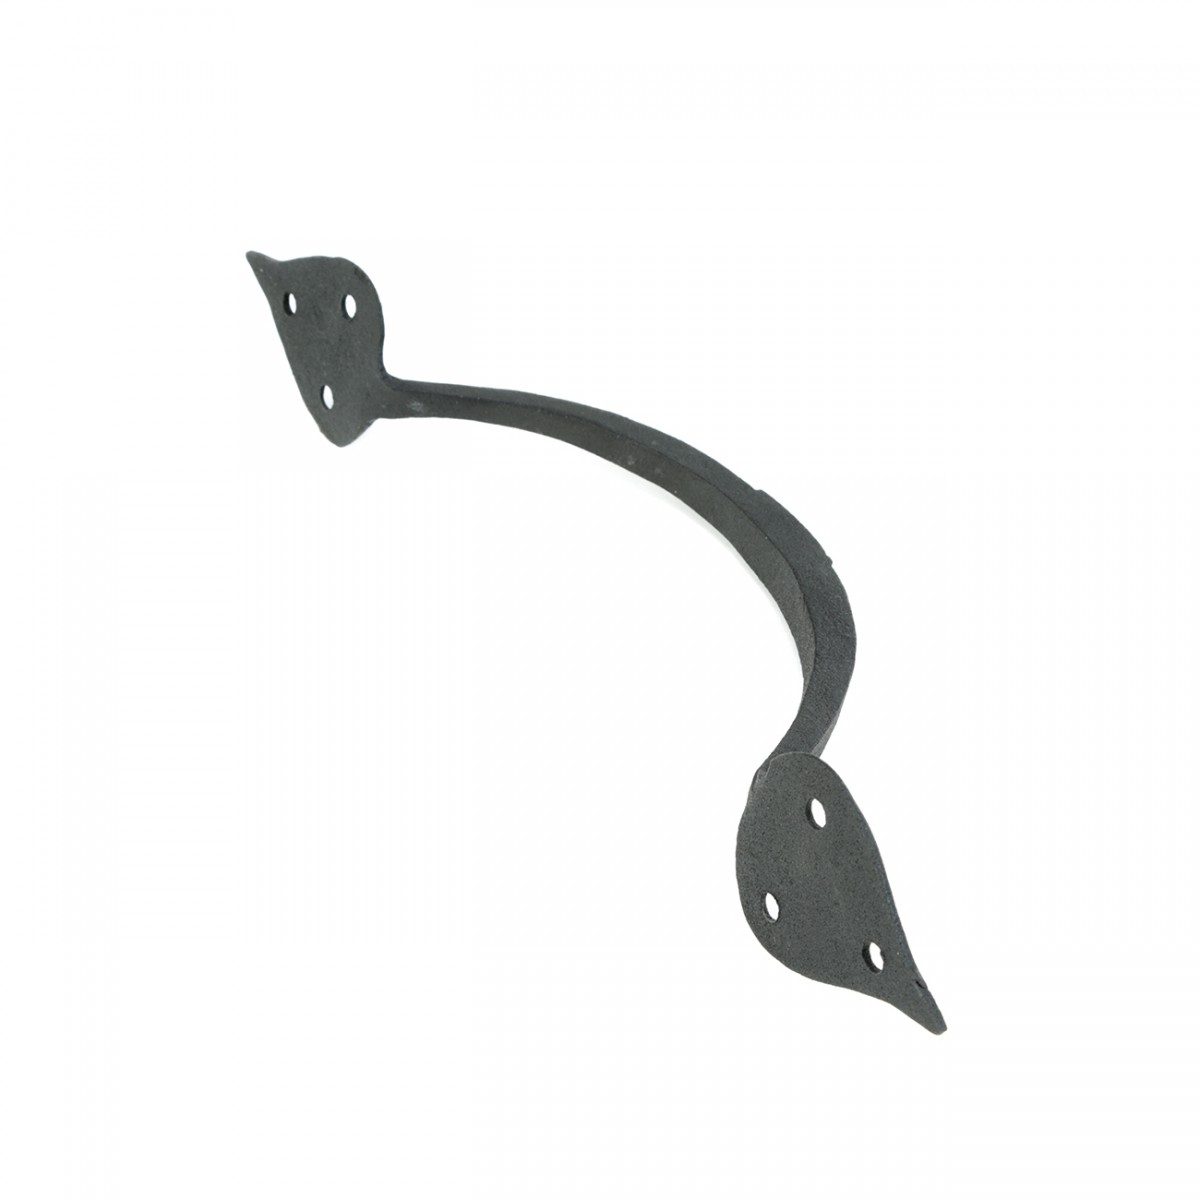 Wrought Iron Door Pulls Black Door Pulls Antique Door Pulls For Cabinets